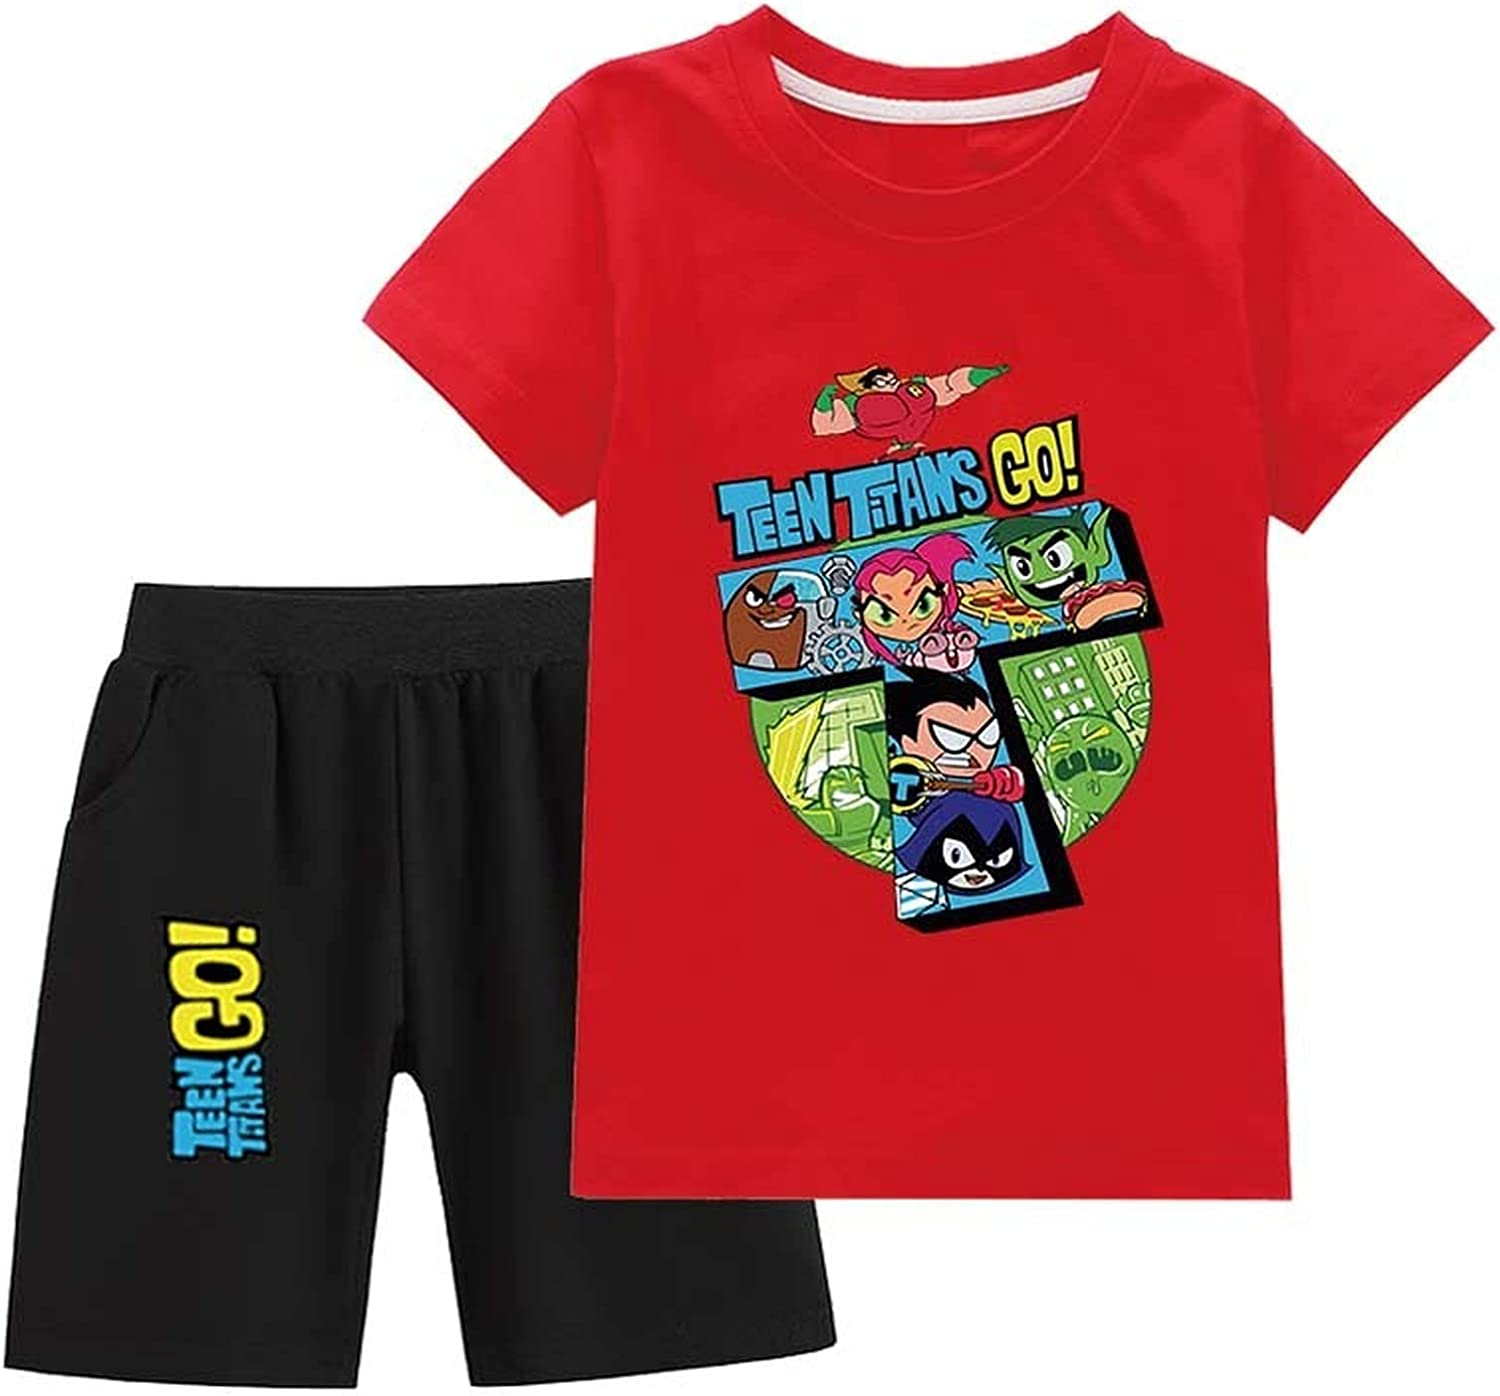 Teen Titans Go! Boys and Girls Clothes Cotton Short-Sleeved T-Shirts and Shorts Summer Clothing Suits Shorts Suits (Red,160)